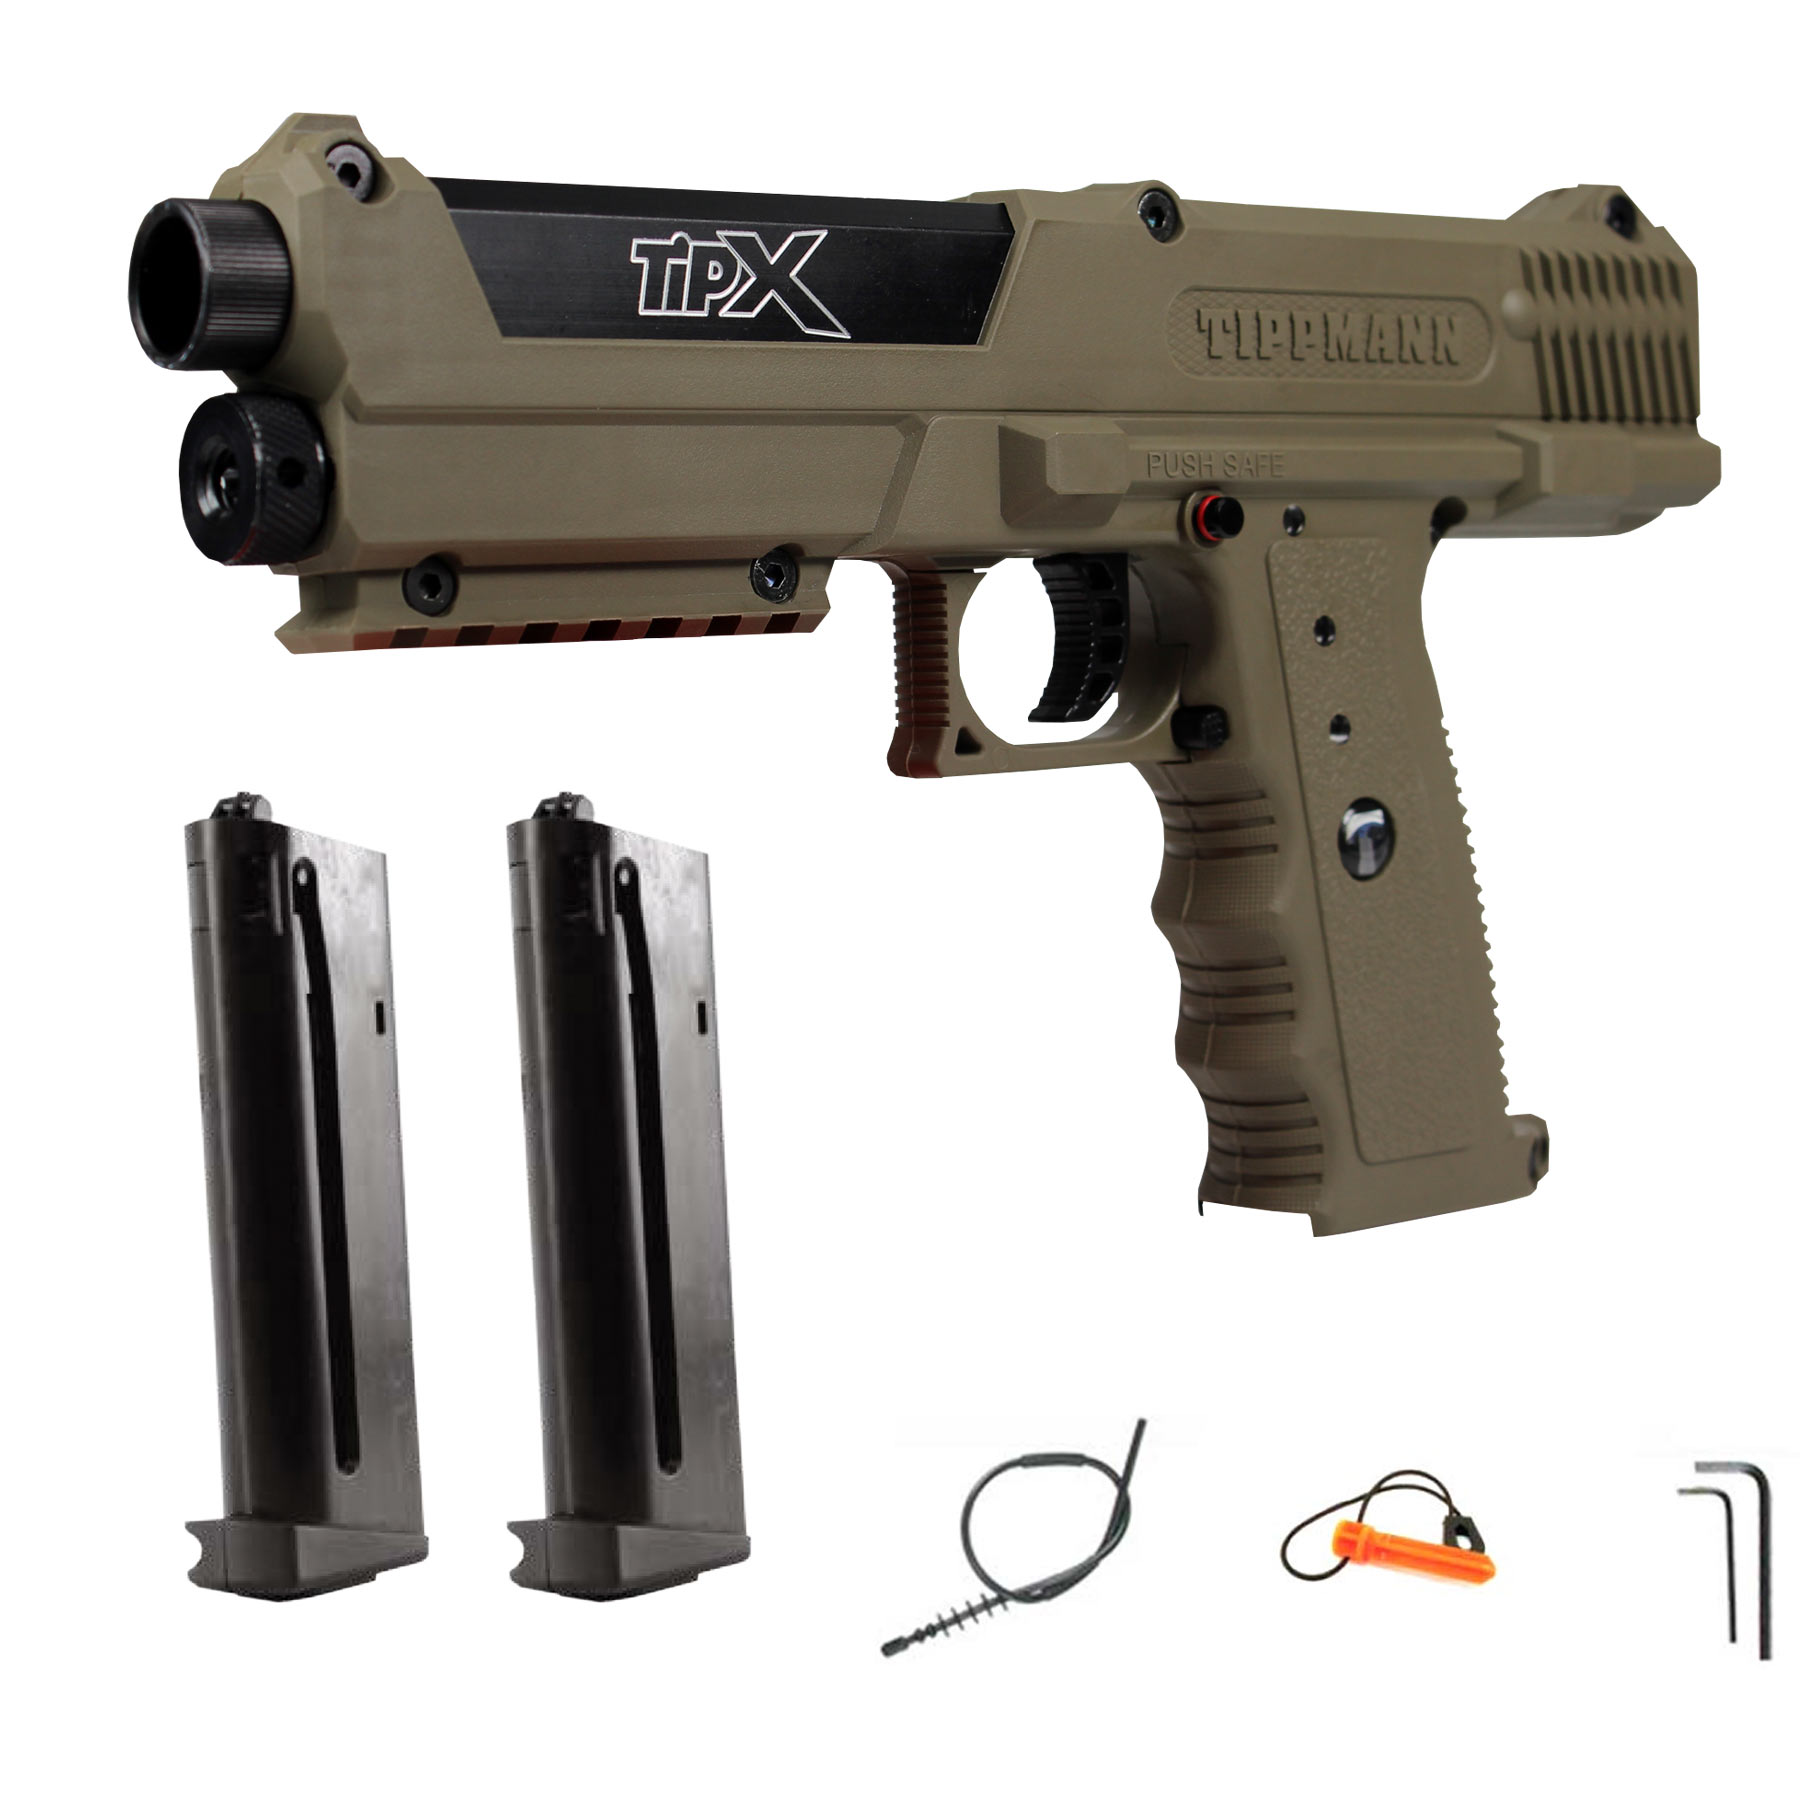 Paintball pistol